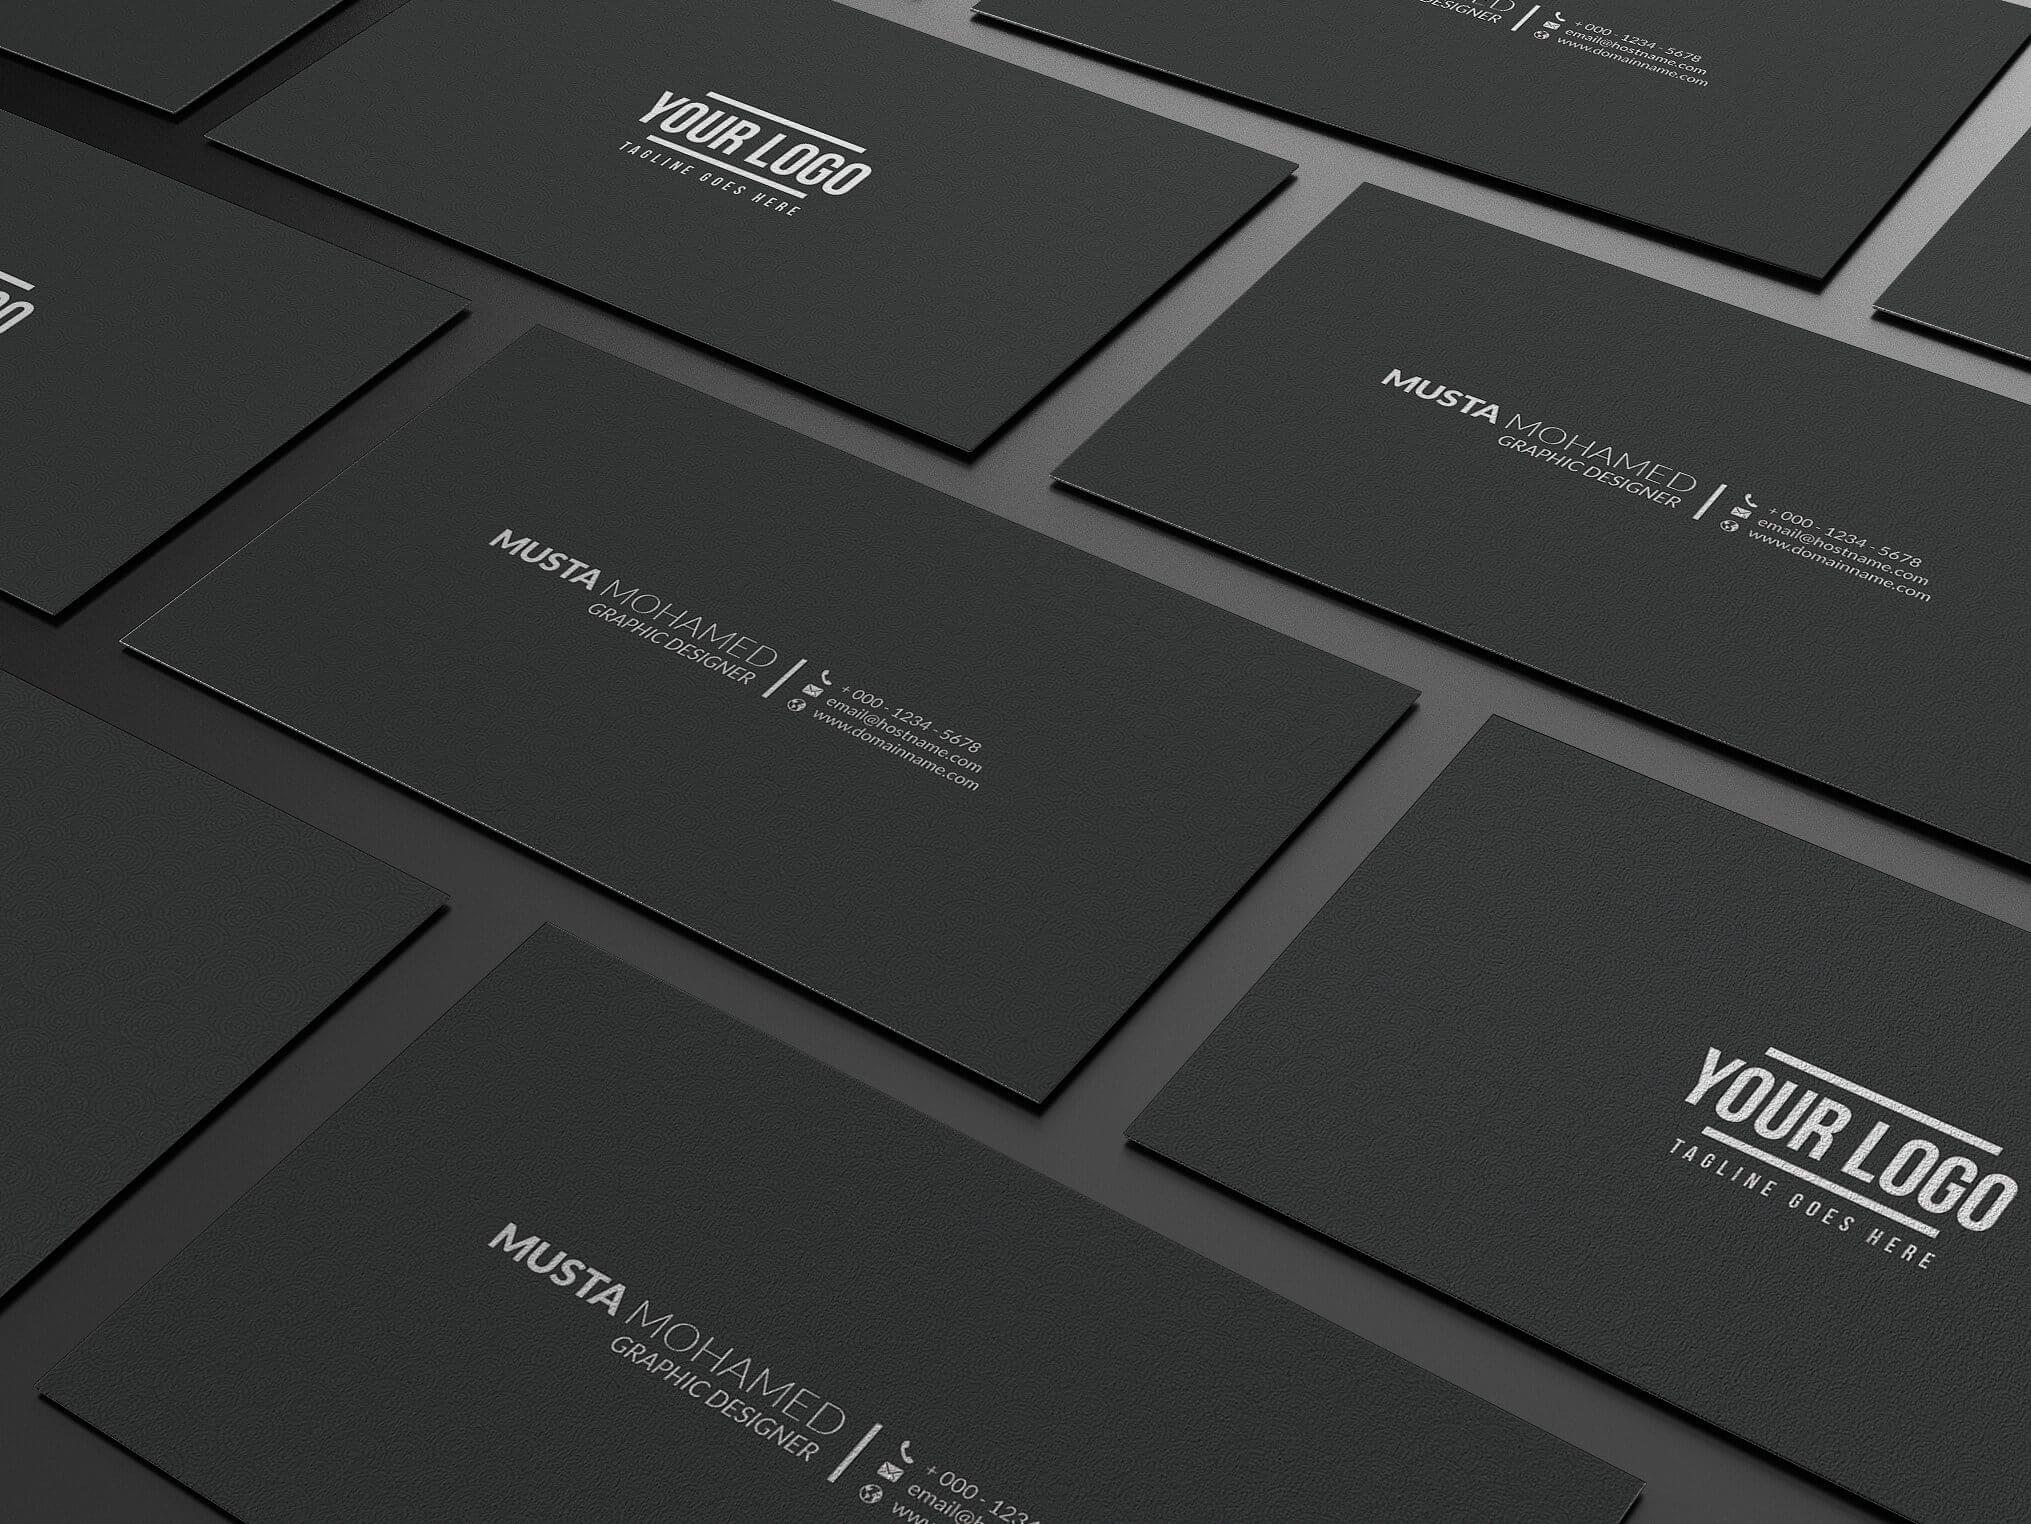 Luxury business cards graphic designer photos business card ideas new york city custom design business cards vsl print reheart Gallery